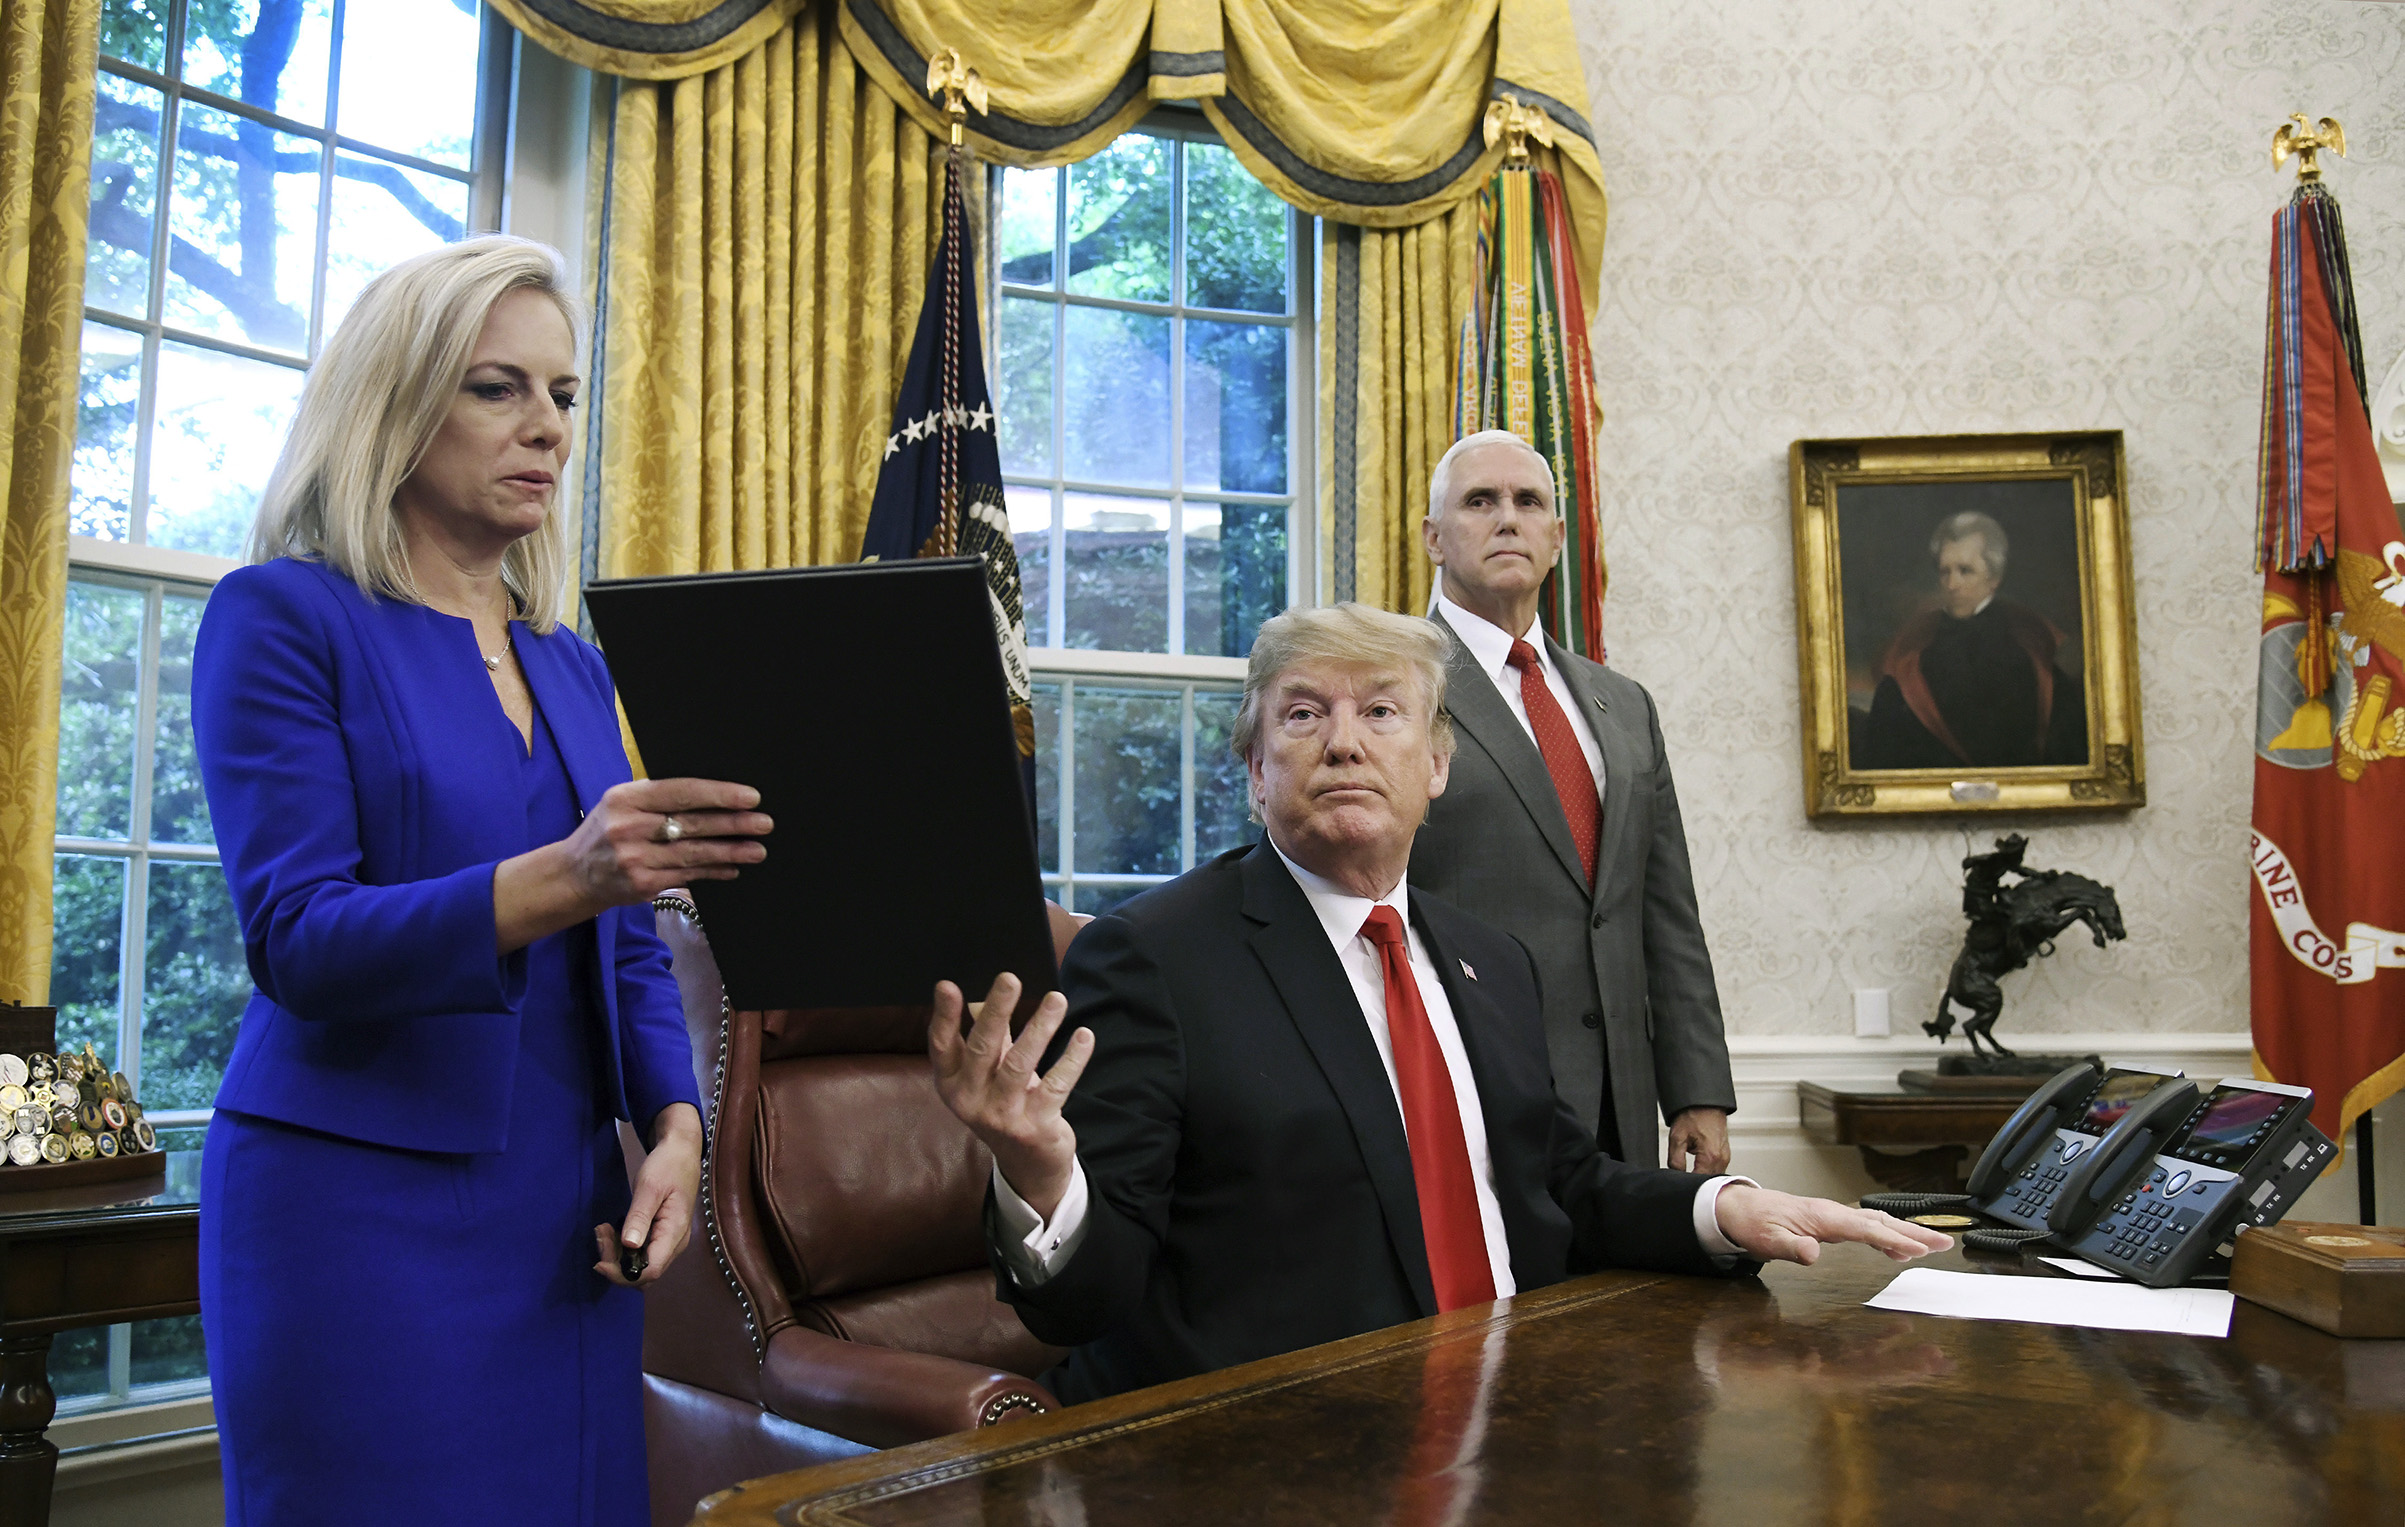 President Donald Trump gives a signed executive order to keep families together at border to Homeland Security Secretary Kirstjen Nielsen in the Oval Office of the White House, on June 20, 2018.